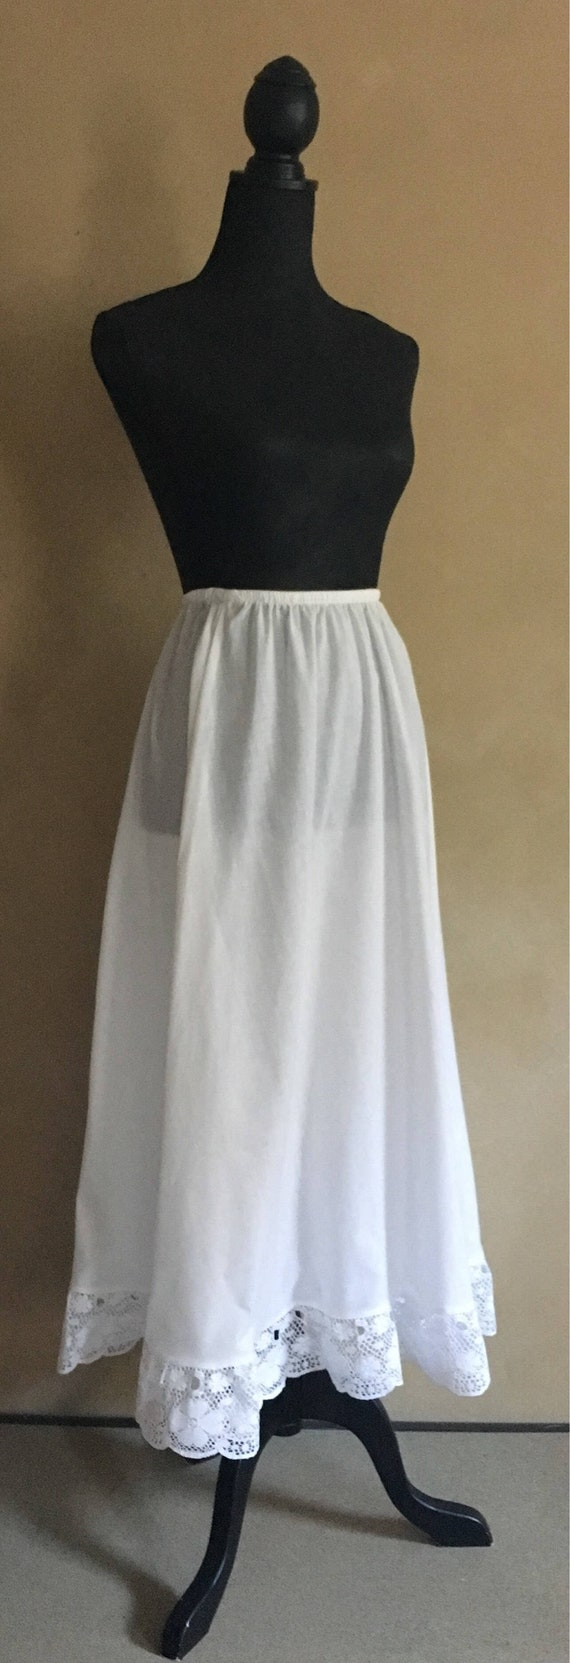 Vintage Petticoat Skirt with Lace  Trim 1970's - made in USA